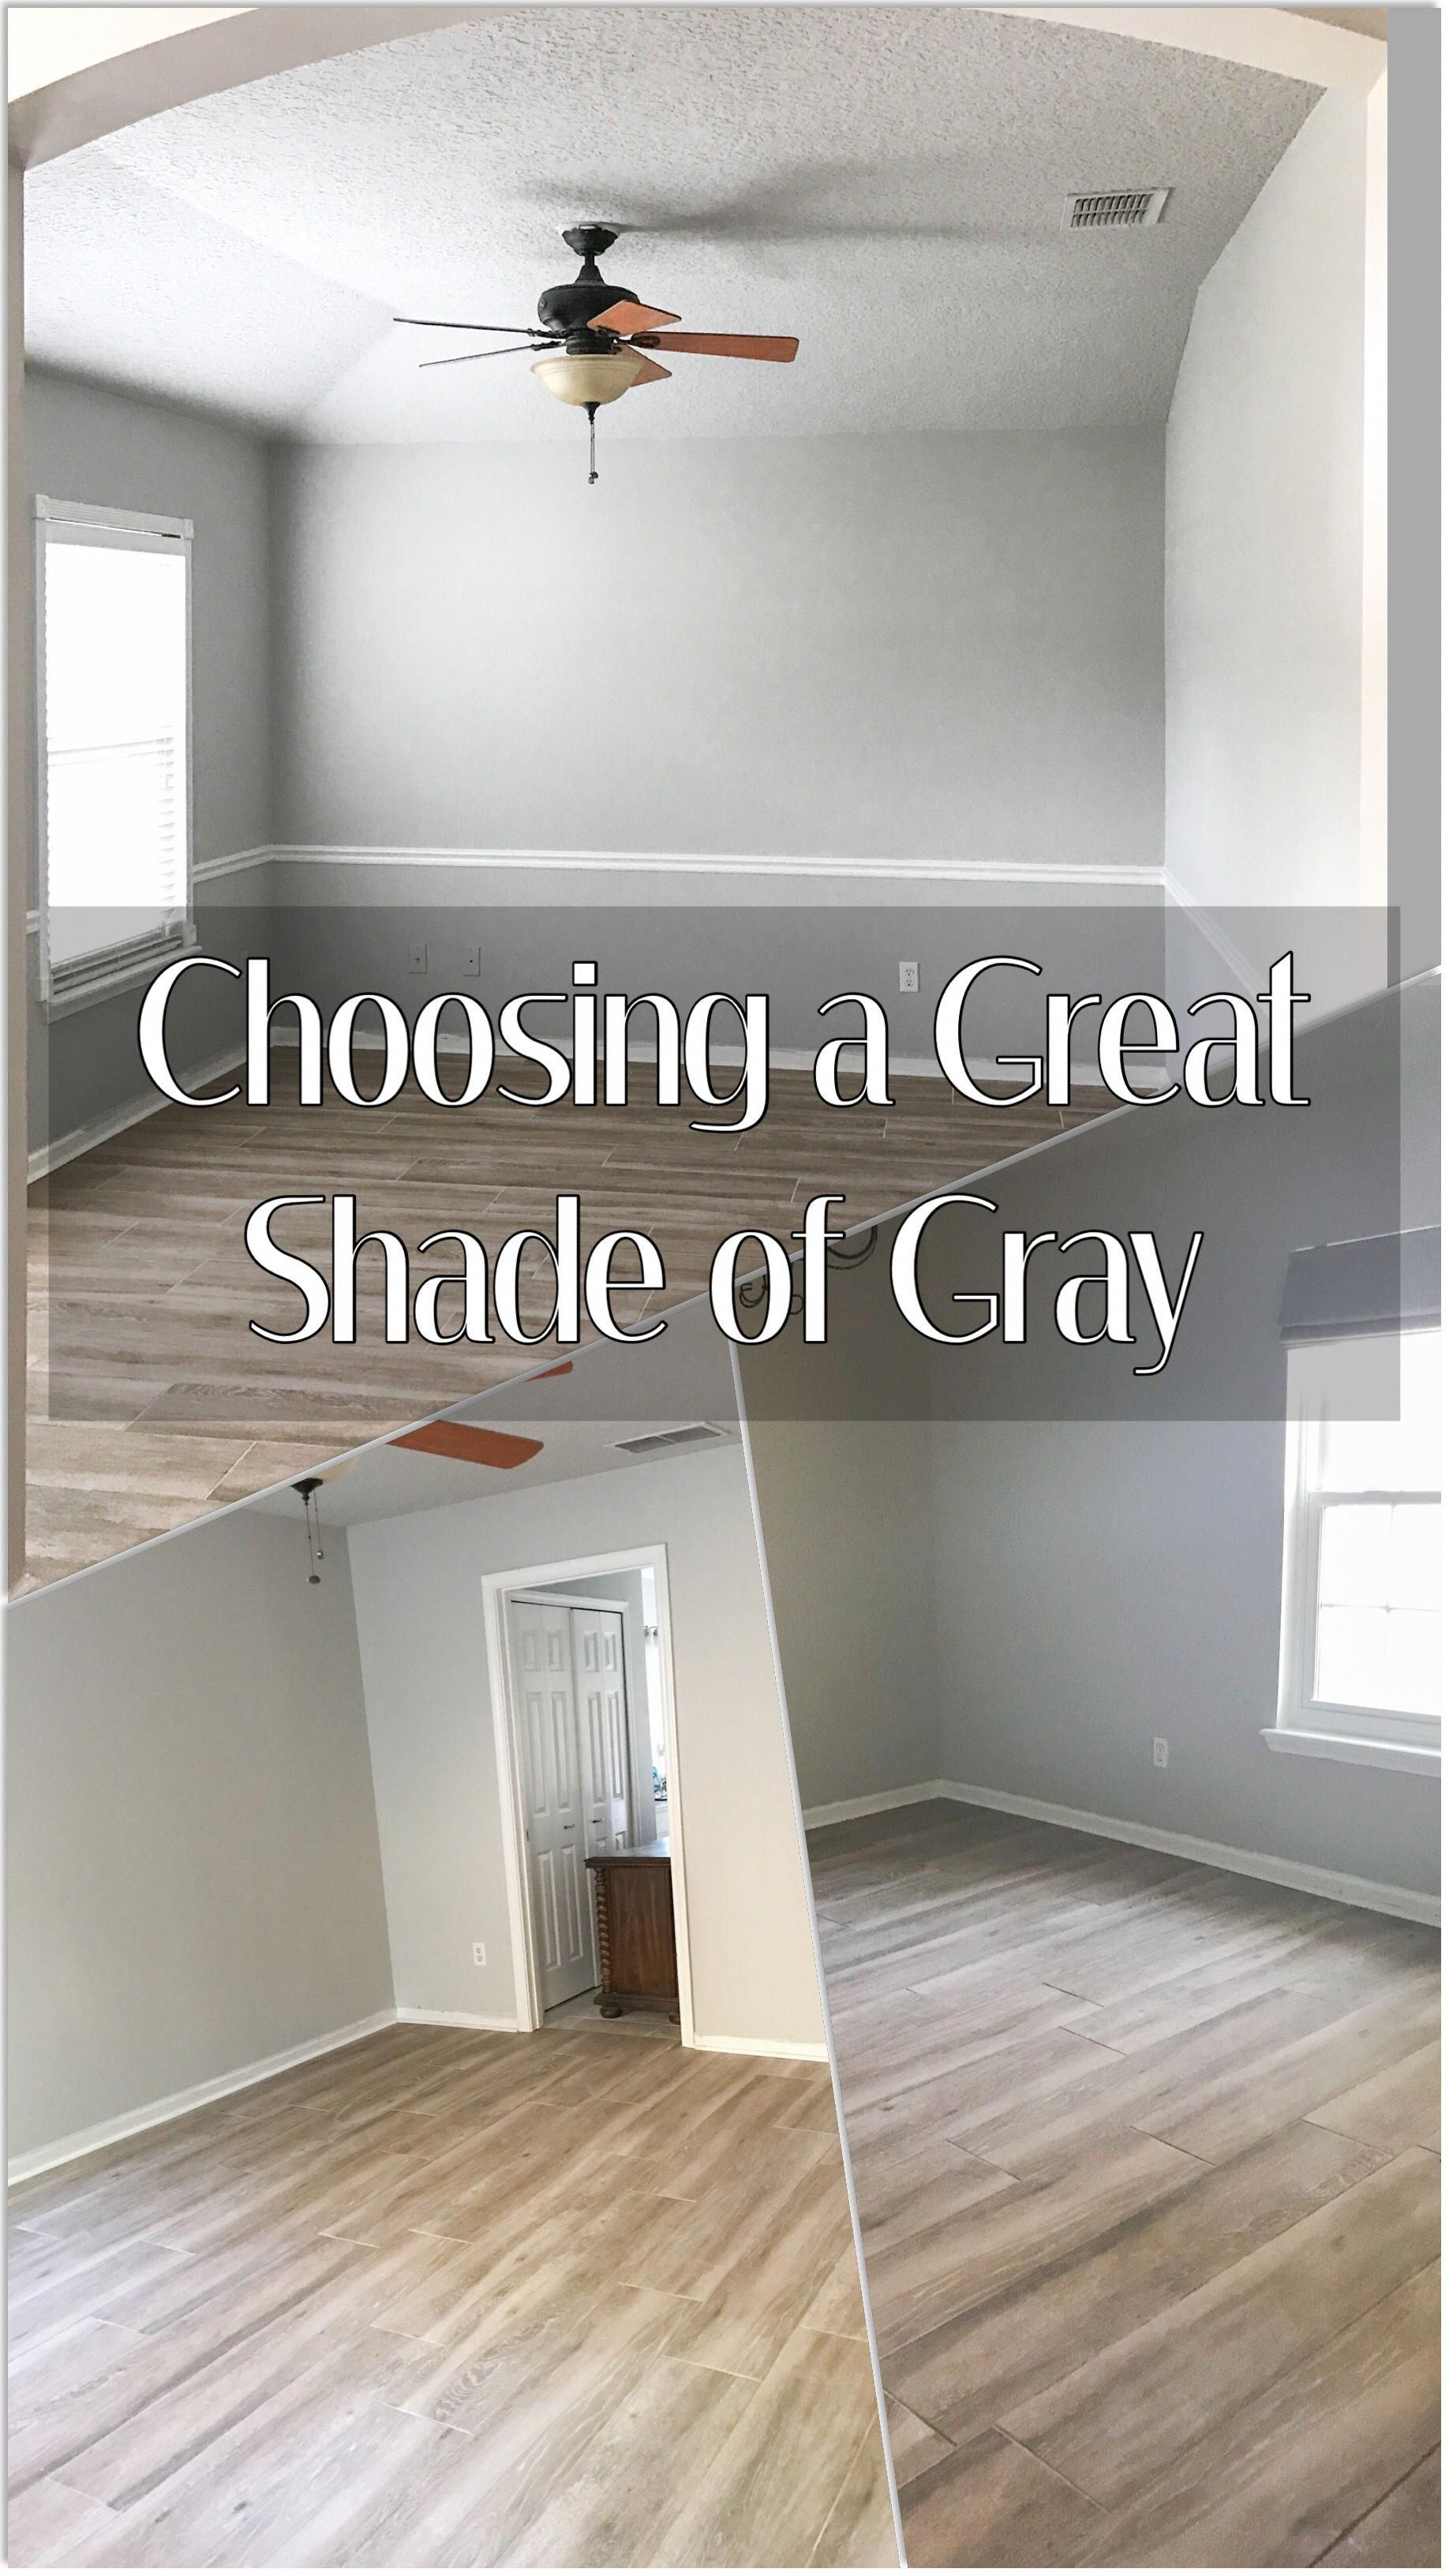 Modern farmhouse gray paint colors home remodeling ideas wood plank floors also best images in rh pinterest